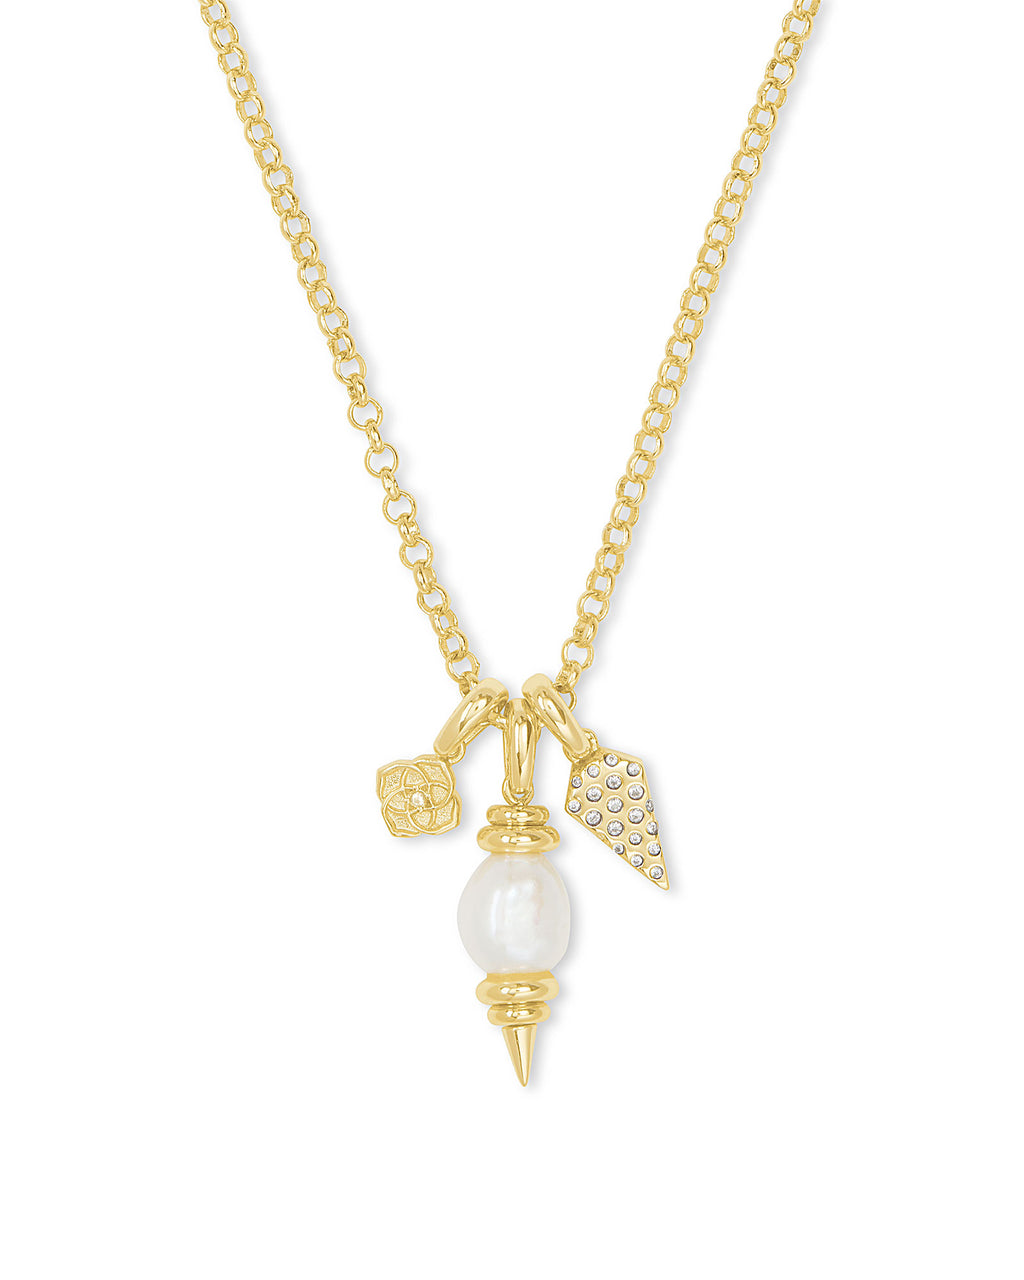 Demi Charm Necklace in Gold Baroque Pearl